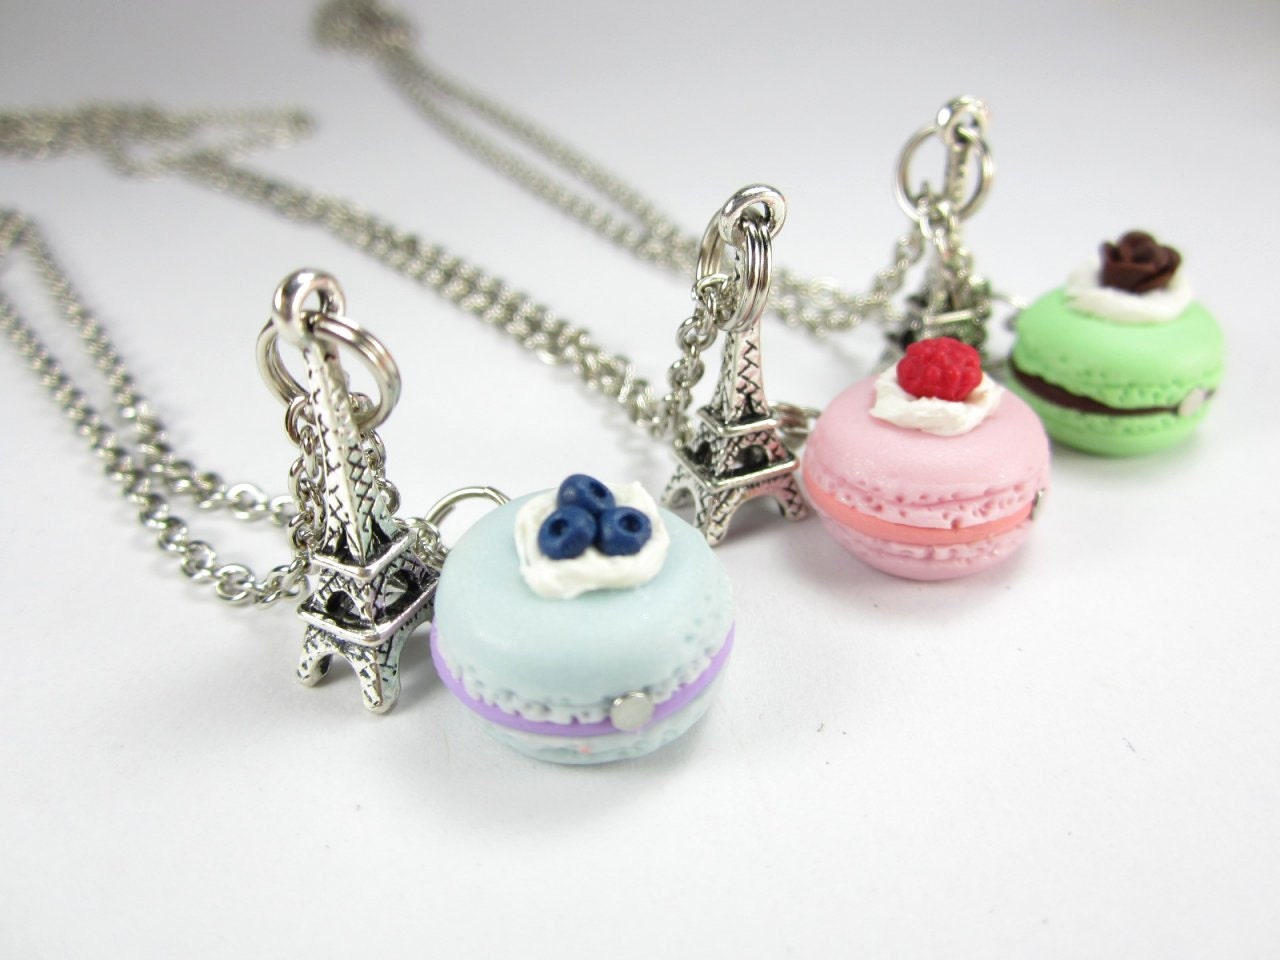 Friendship Necklace on Bff Paris Macaron Necklace Friendship Necklace 3pcs By Fwirl